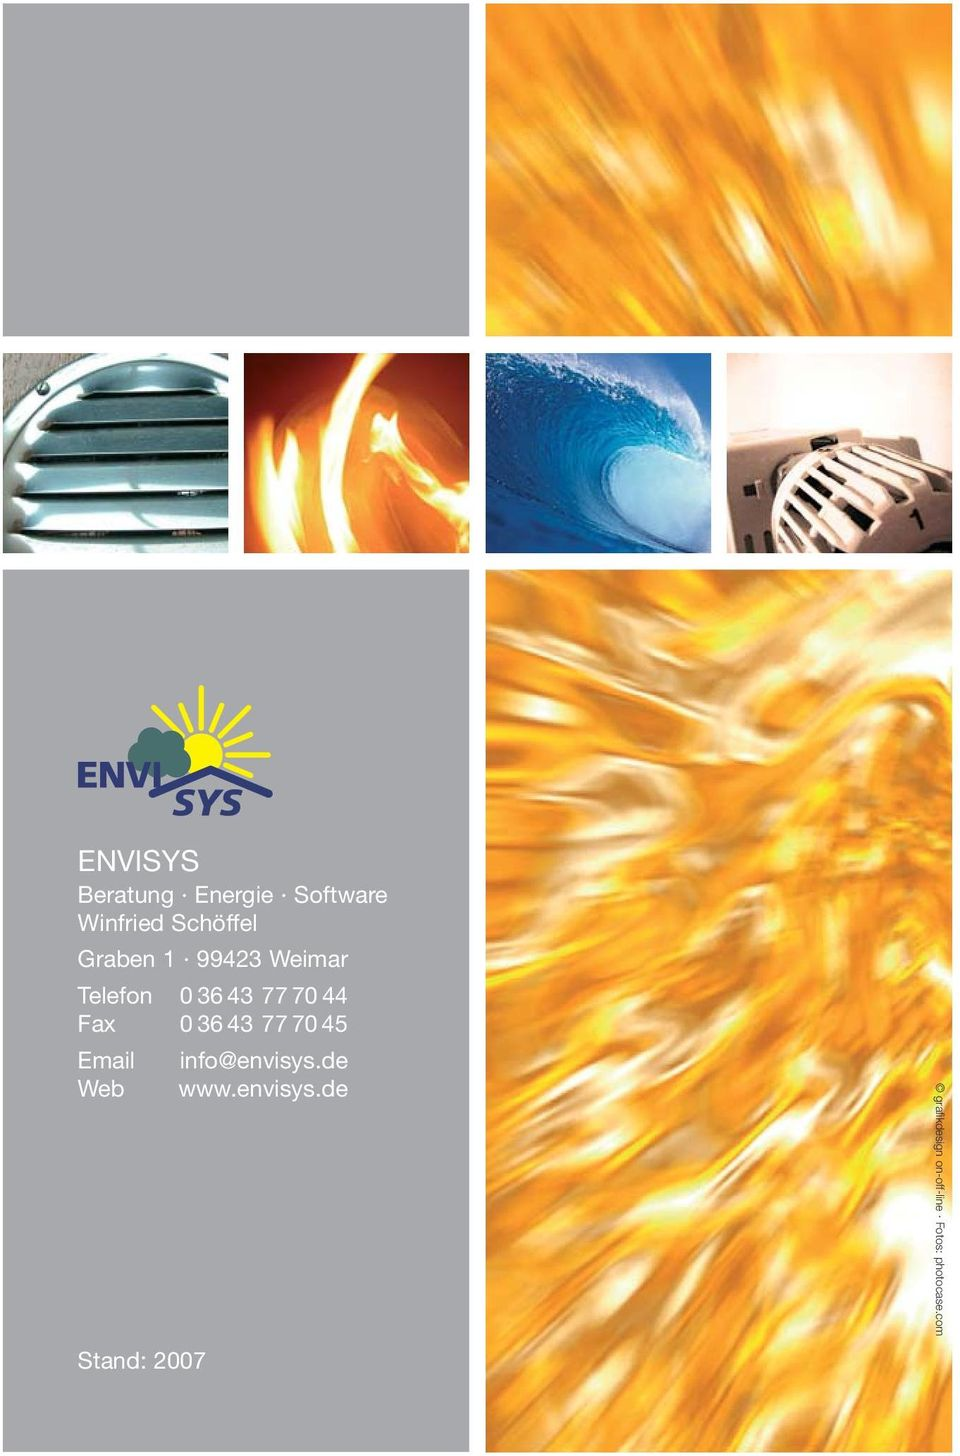 03643 777045 Email info@envisys.